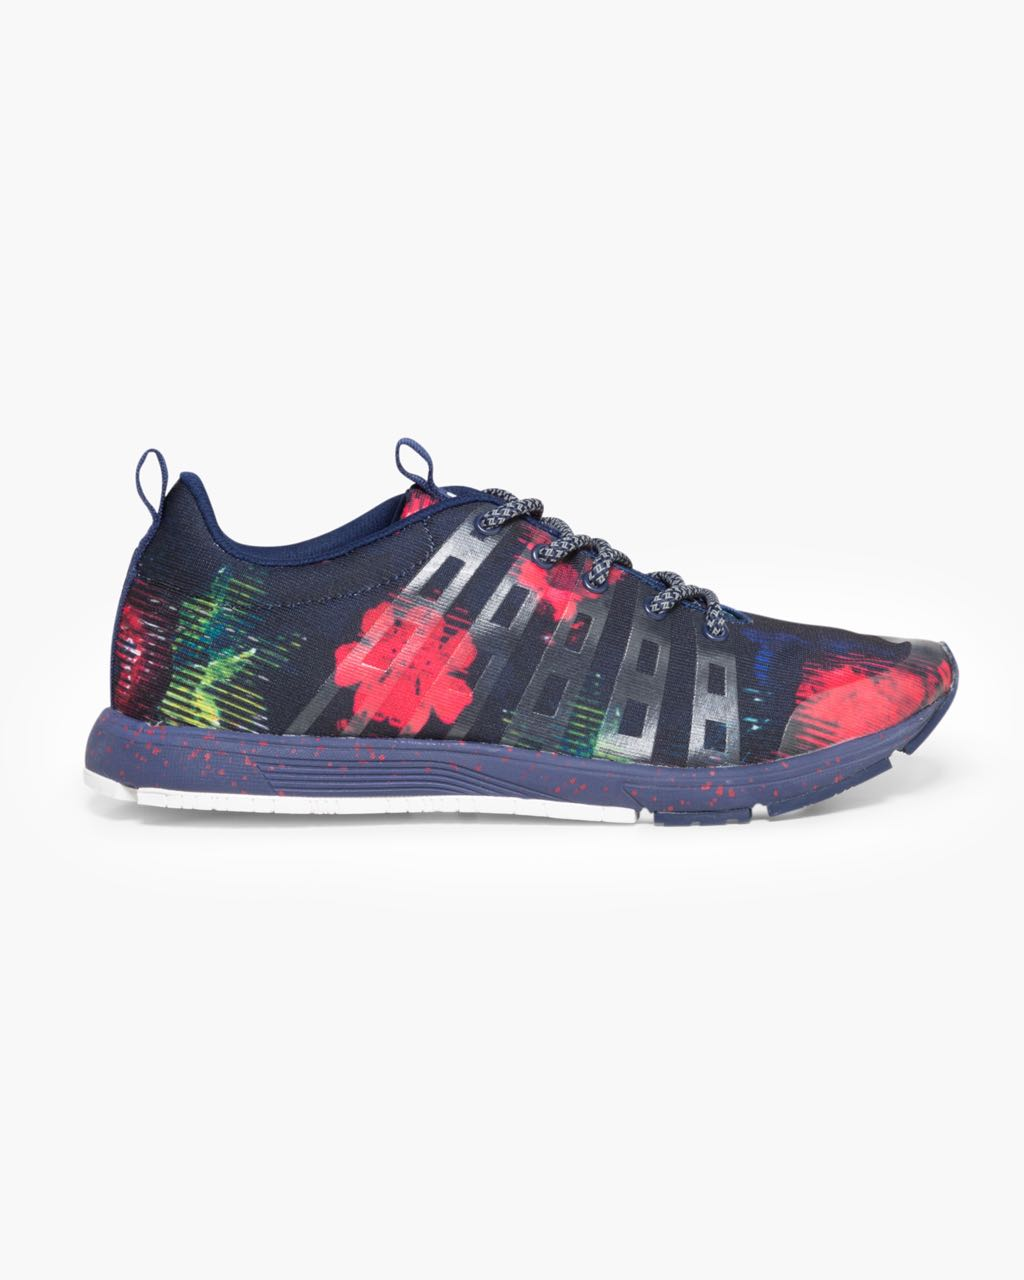 17WKRW00_5149 Desigual Running Shoes X-Lyte 3.0 Buy Online